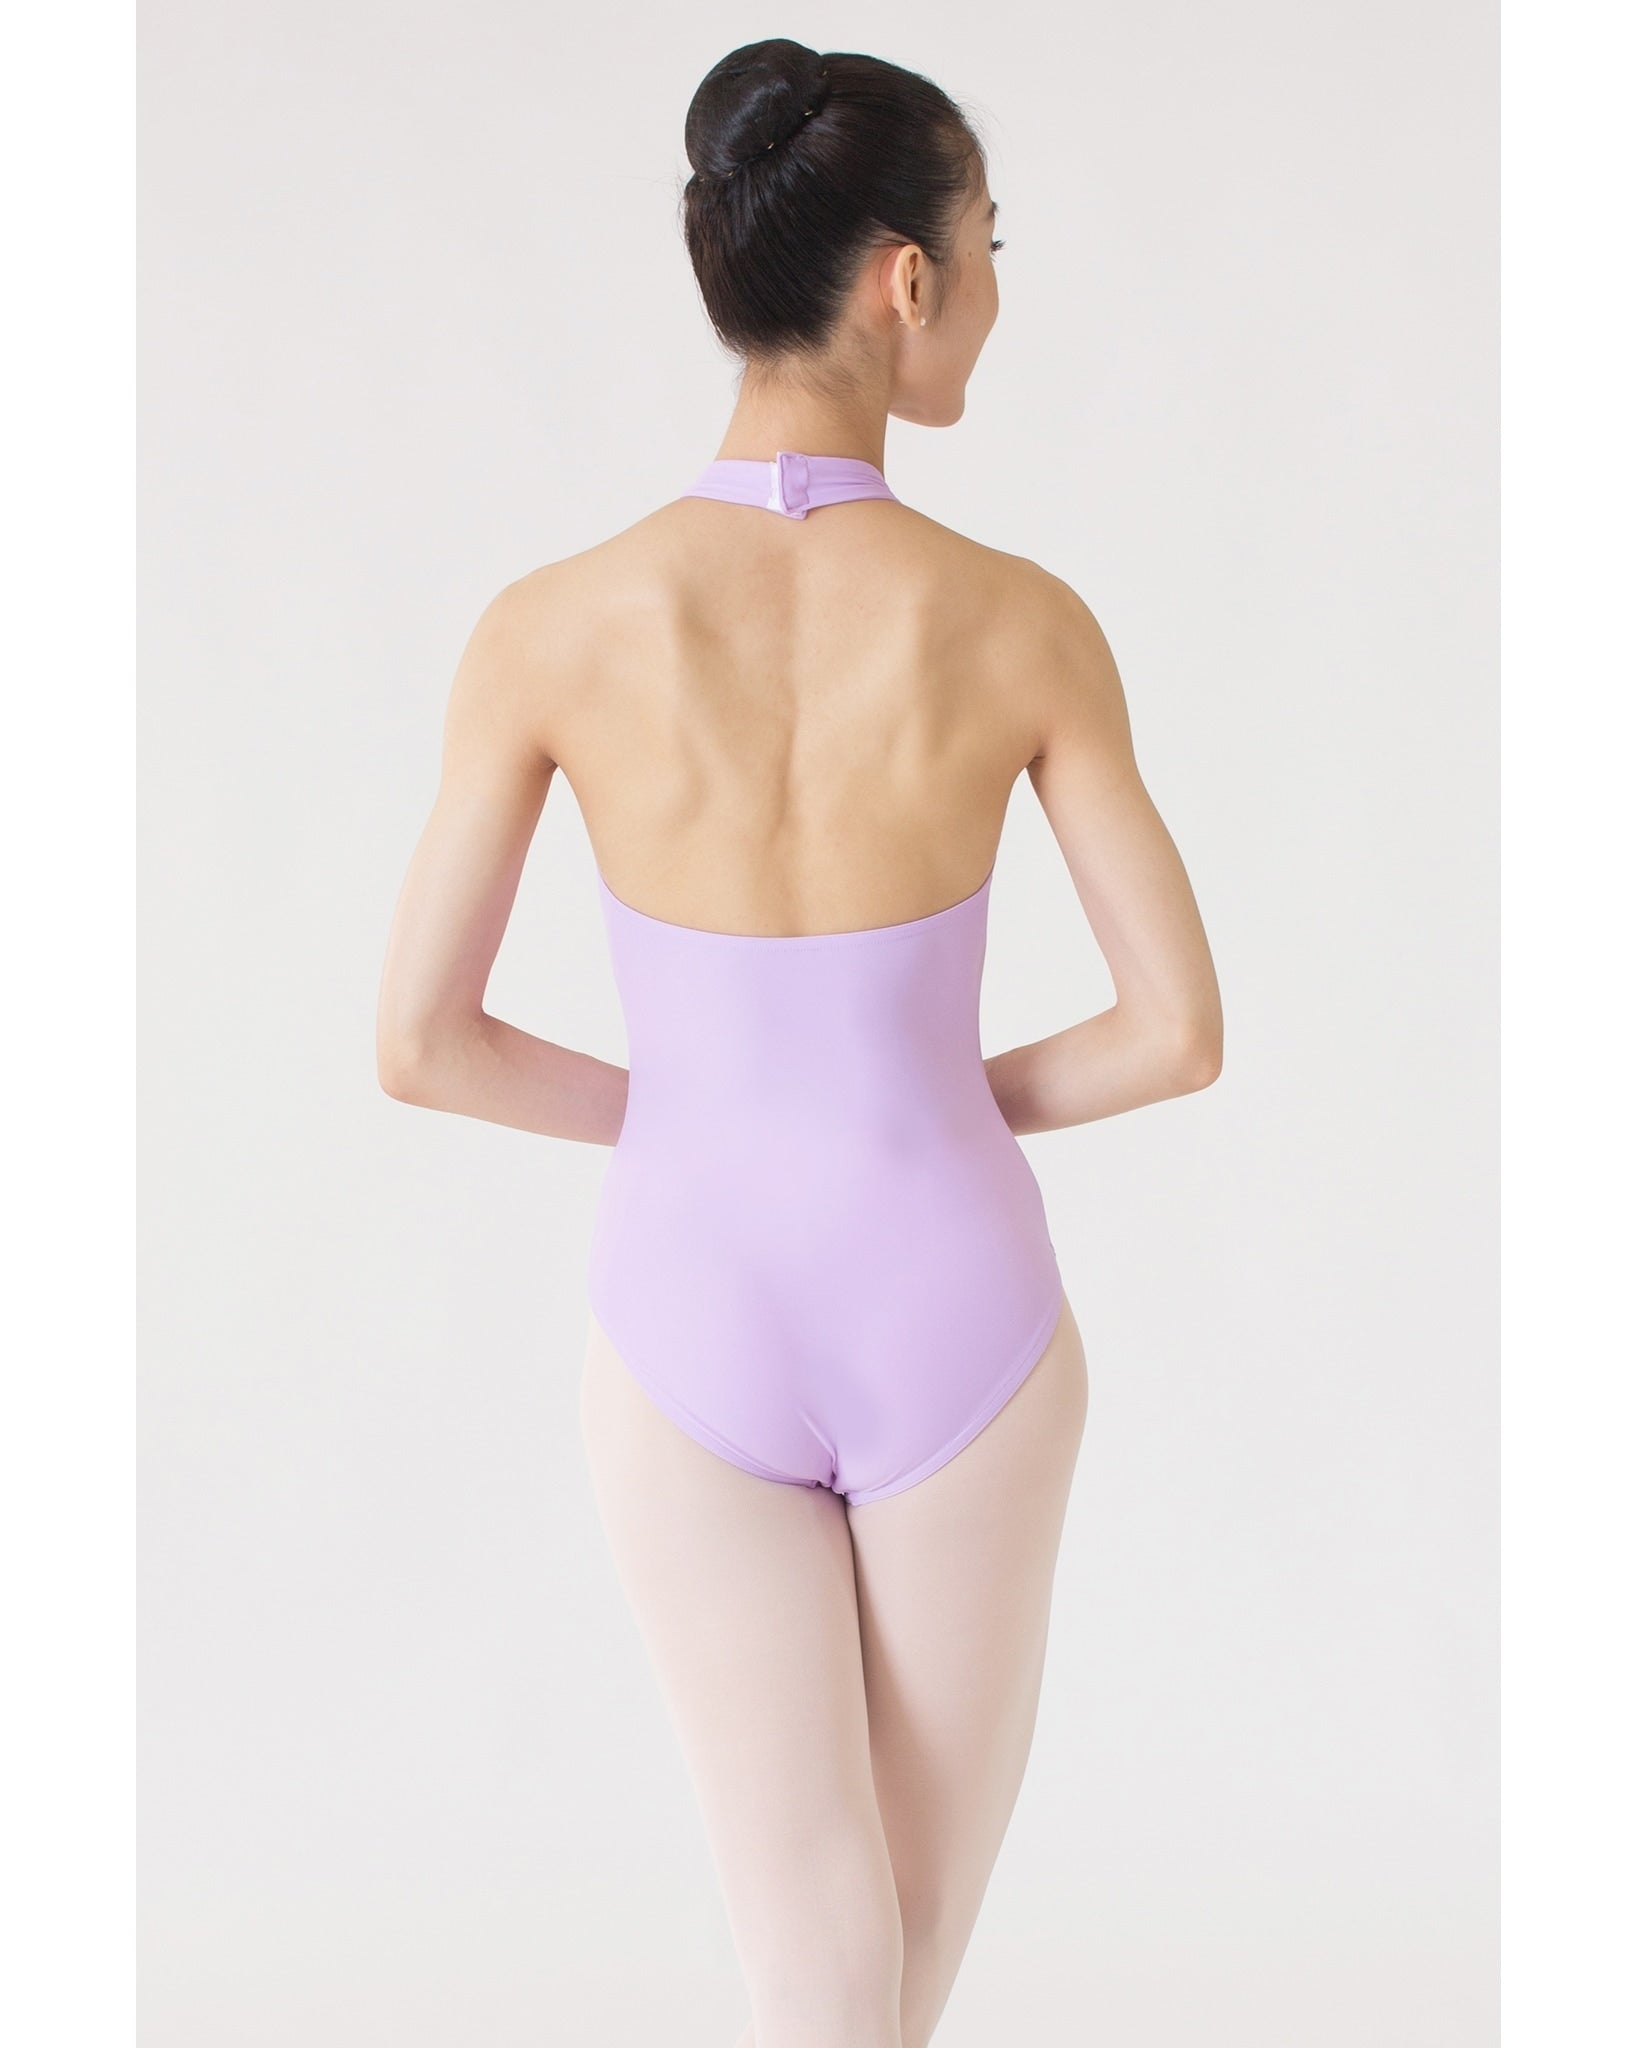 Sonata Classic High Neck Leotard - SL4449 Womens - Dancewear - Bodysuits & Leotards - Dancewear Centre Canada